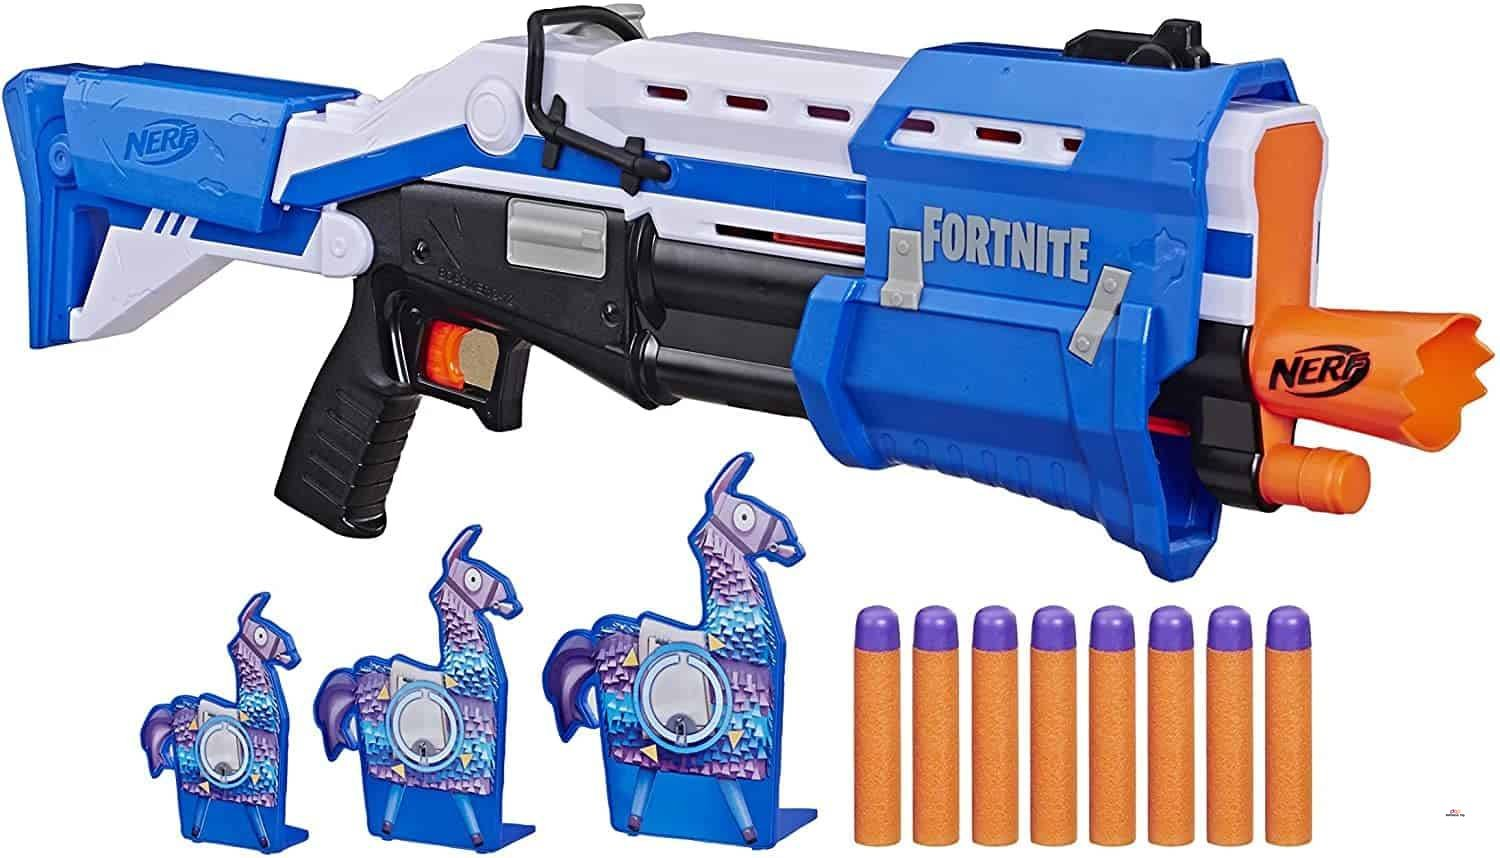 Product image of NERF Fortnite TS-R